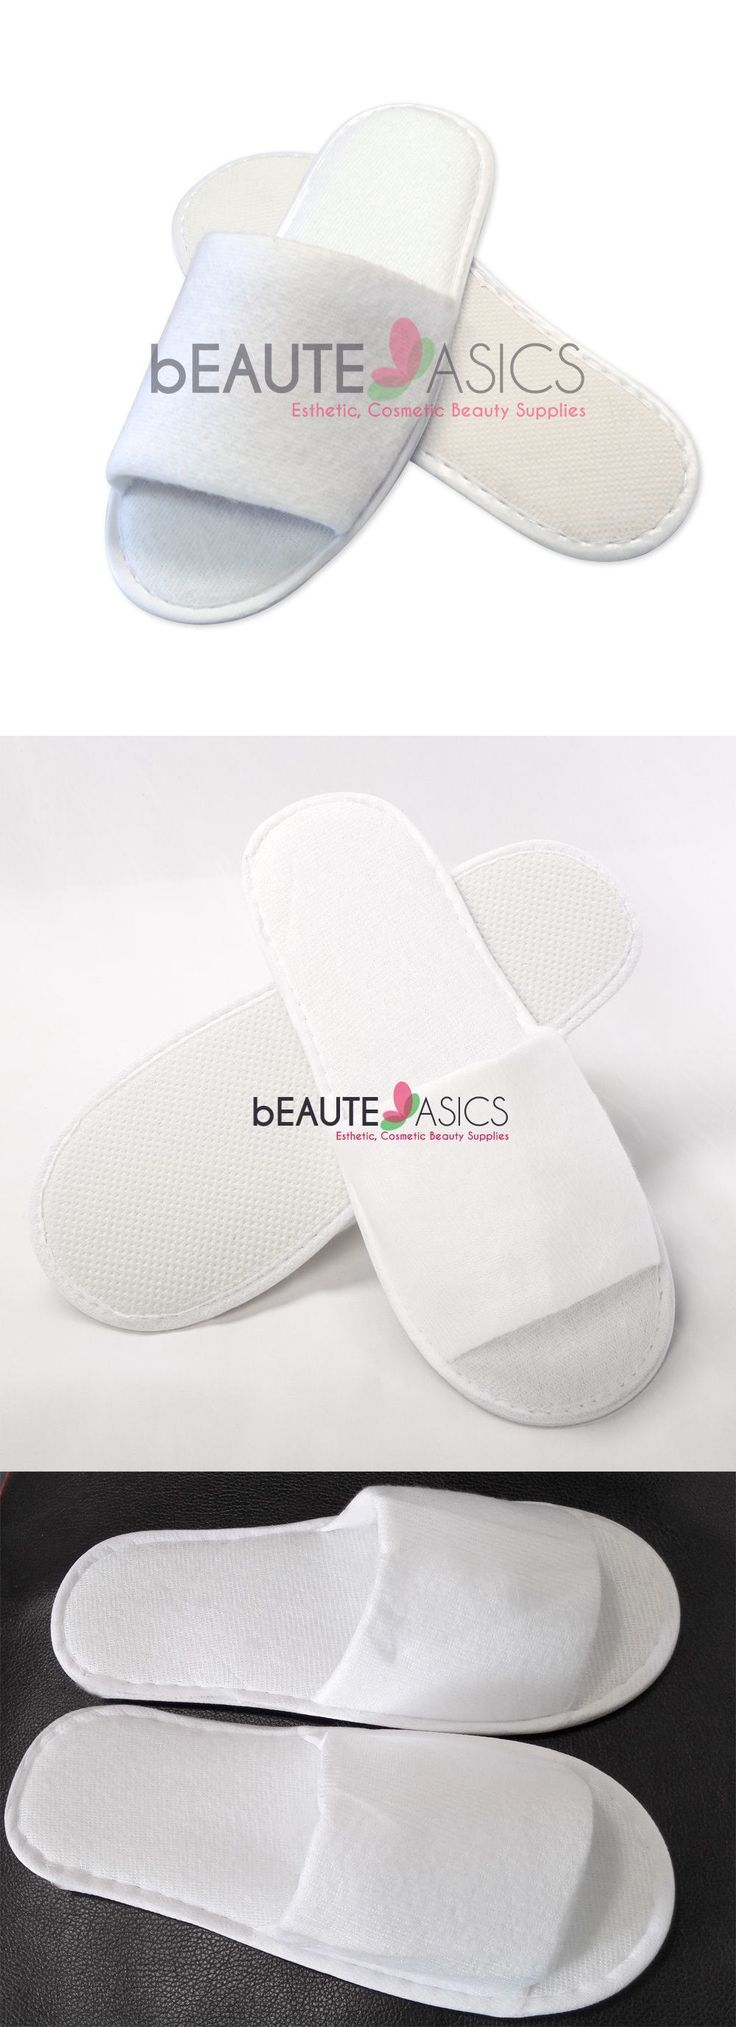 Slippers 163550: 6 25 50 100 200 Pairs Lot Wholesale Disposable Hotel Spa Slippers?Us? -> BUY IT NOW ONLY: $249.99 on eBay!